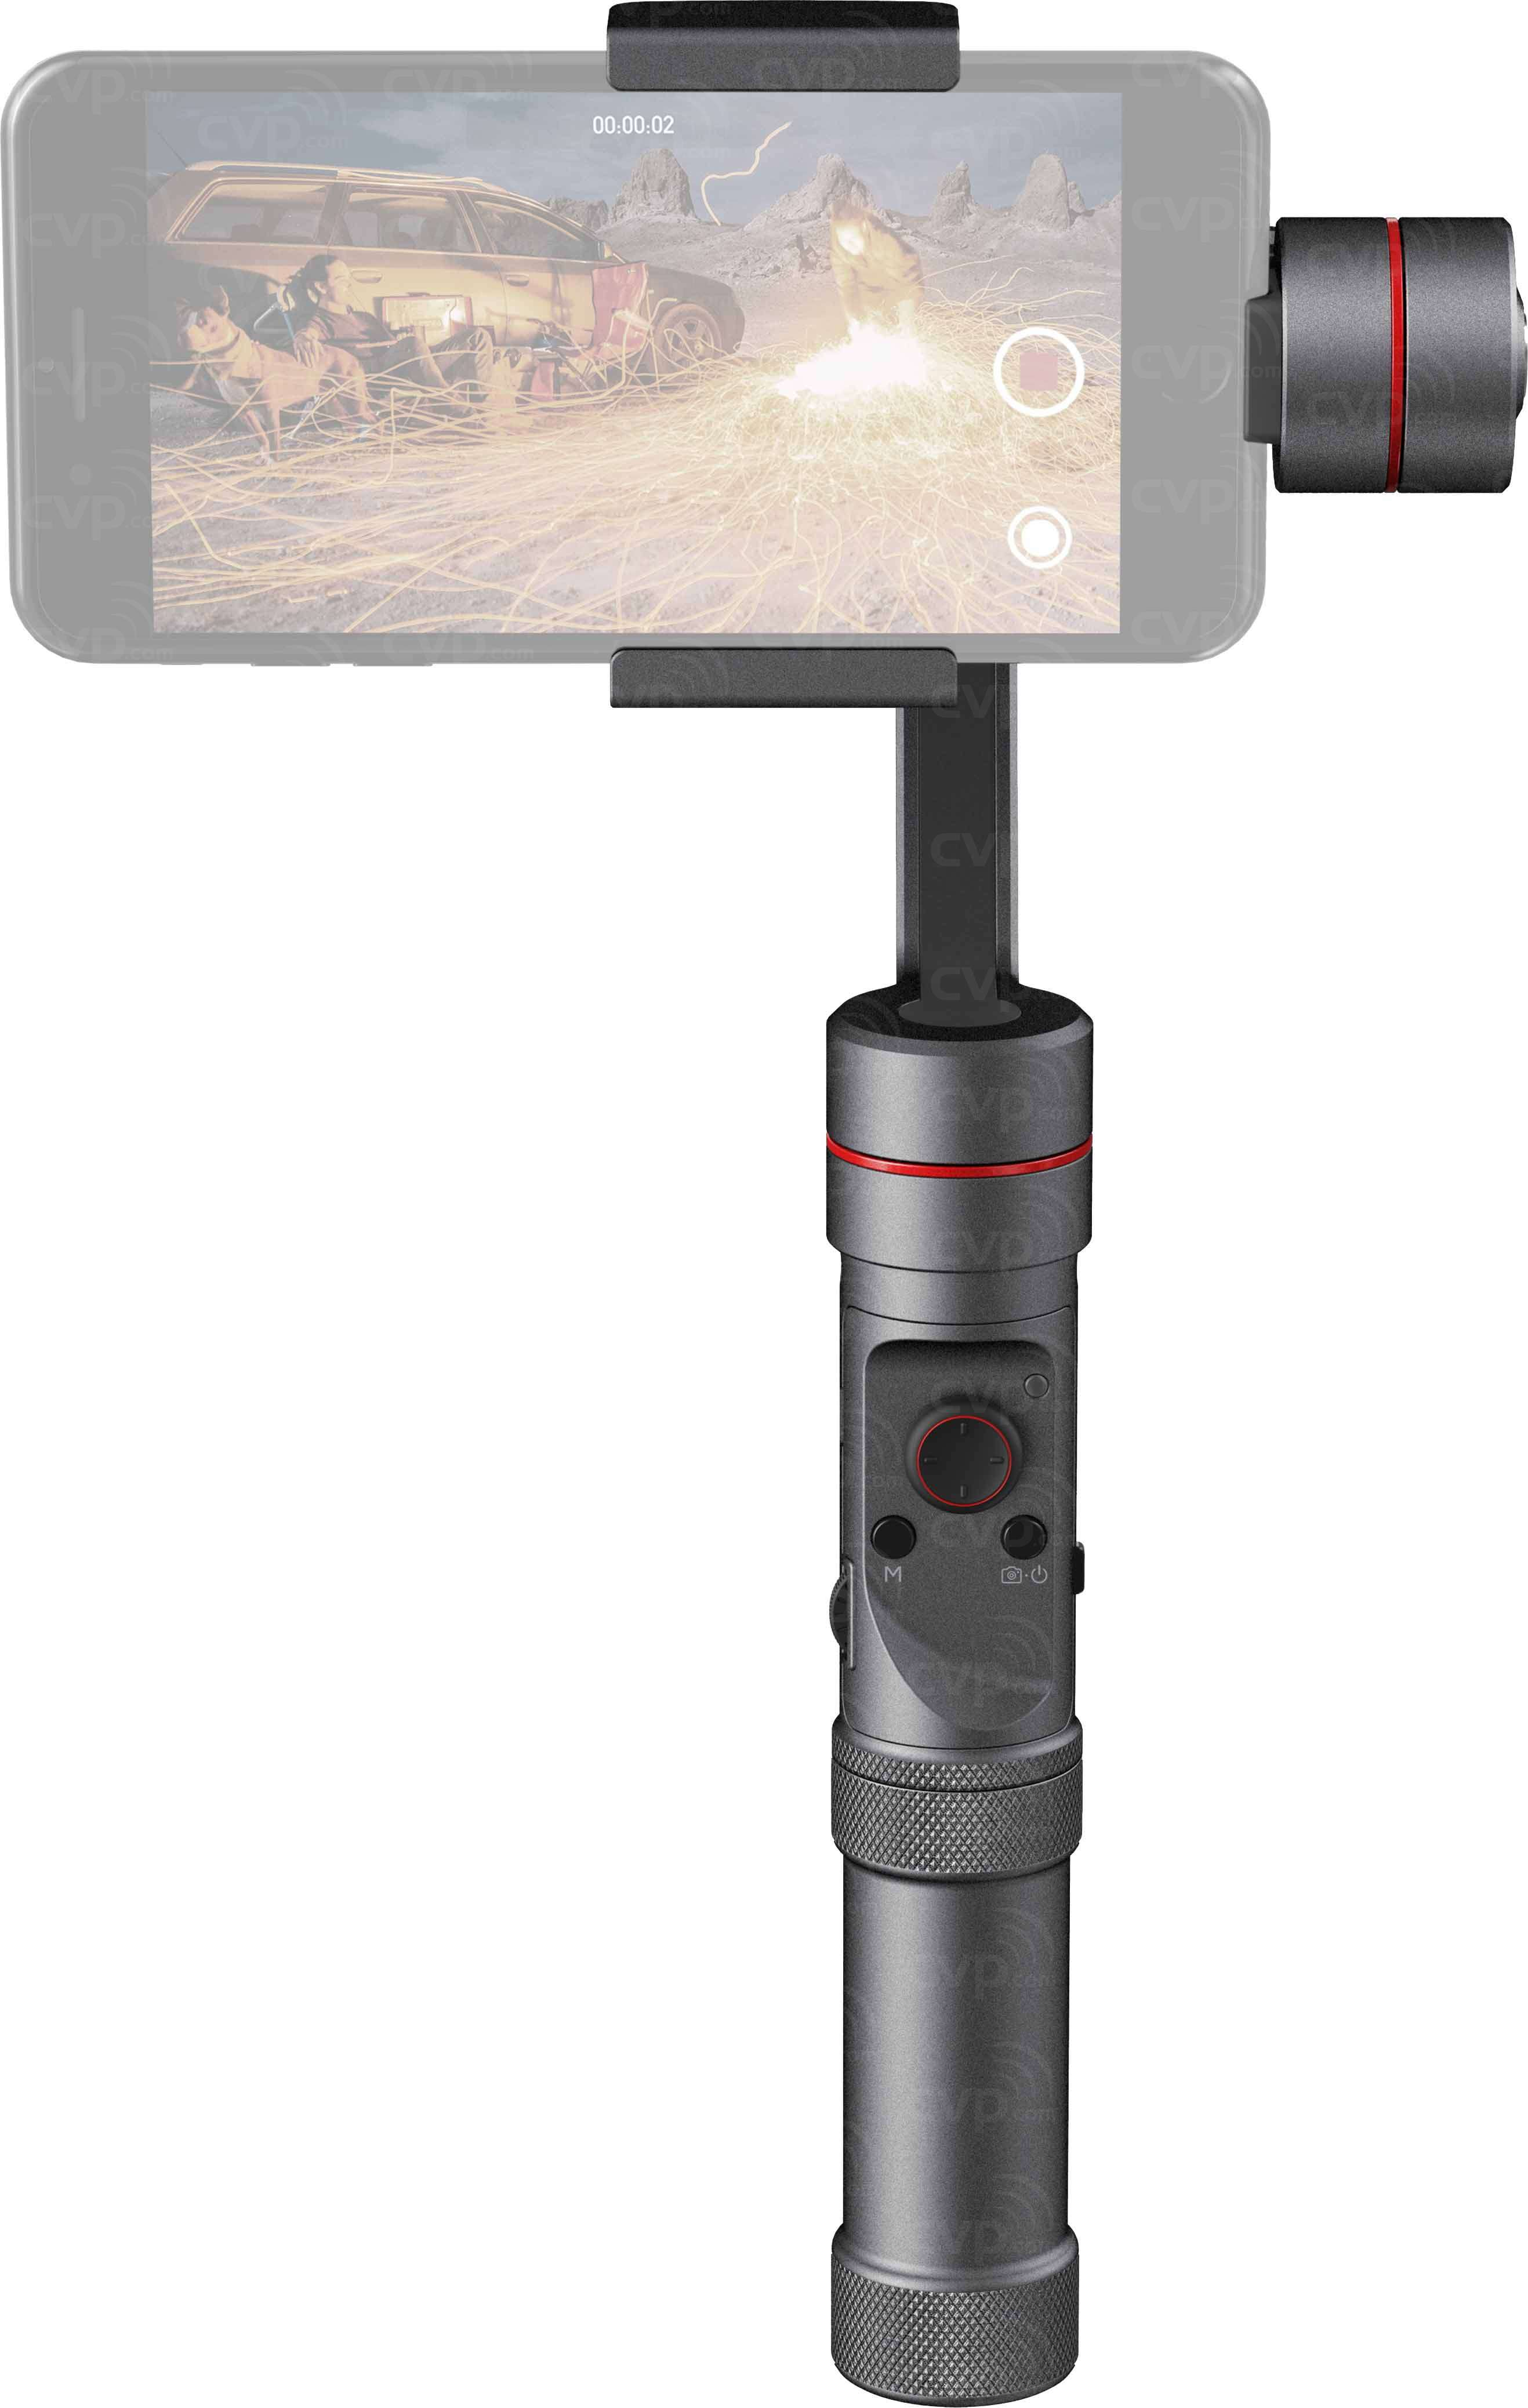 Zhiyun-Tech Smooth 3 Gimbal